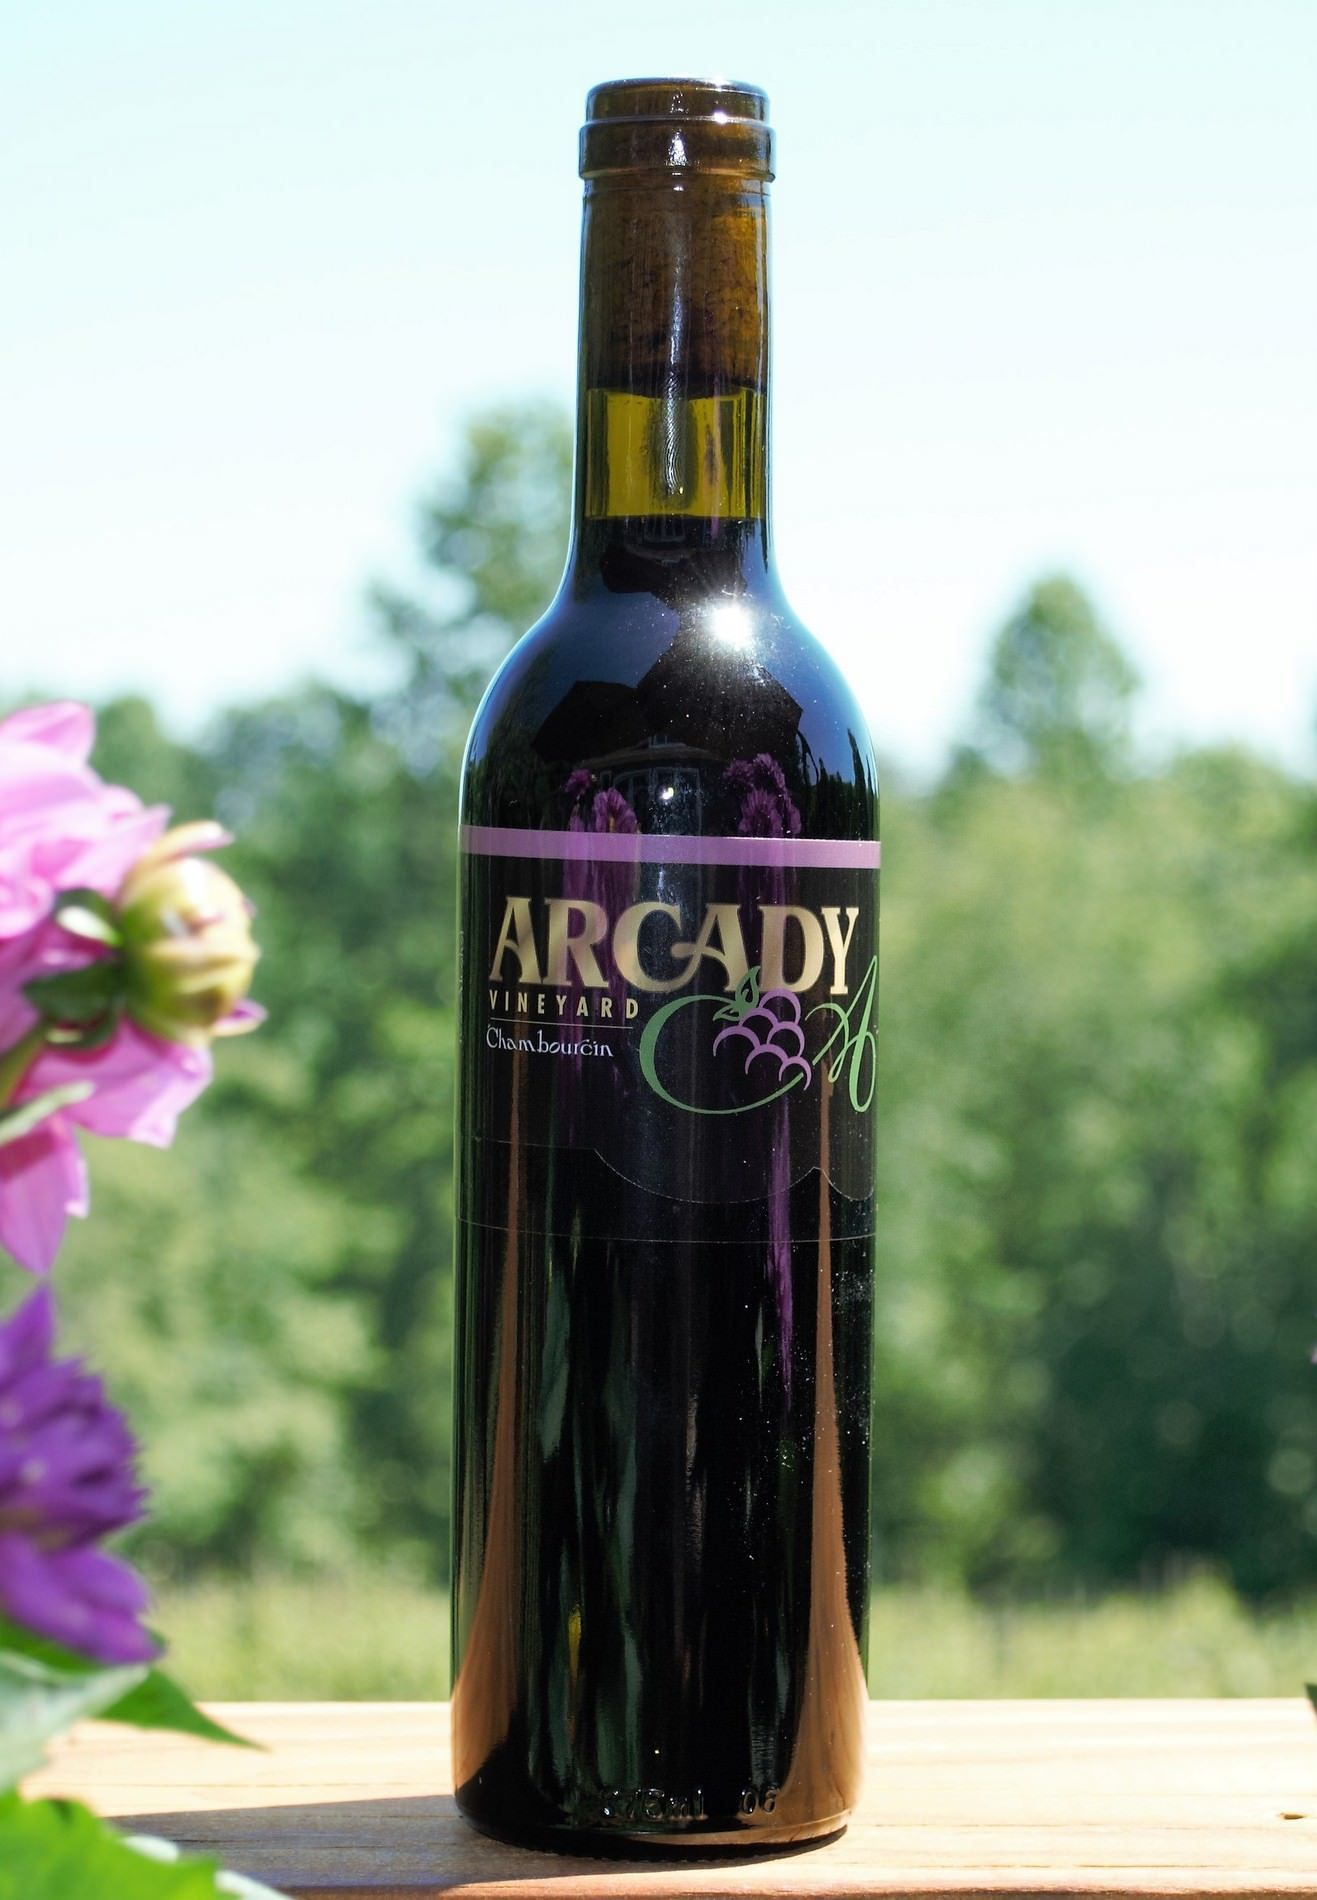 Arcady Vineyard Bed Breakfast Charlottesville Virginia In 2020 Bed And Breakfast Virginia Wine Country Winery Tours